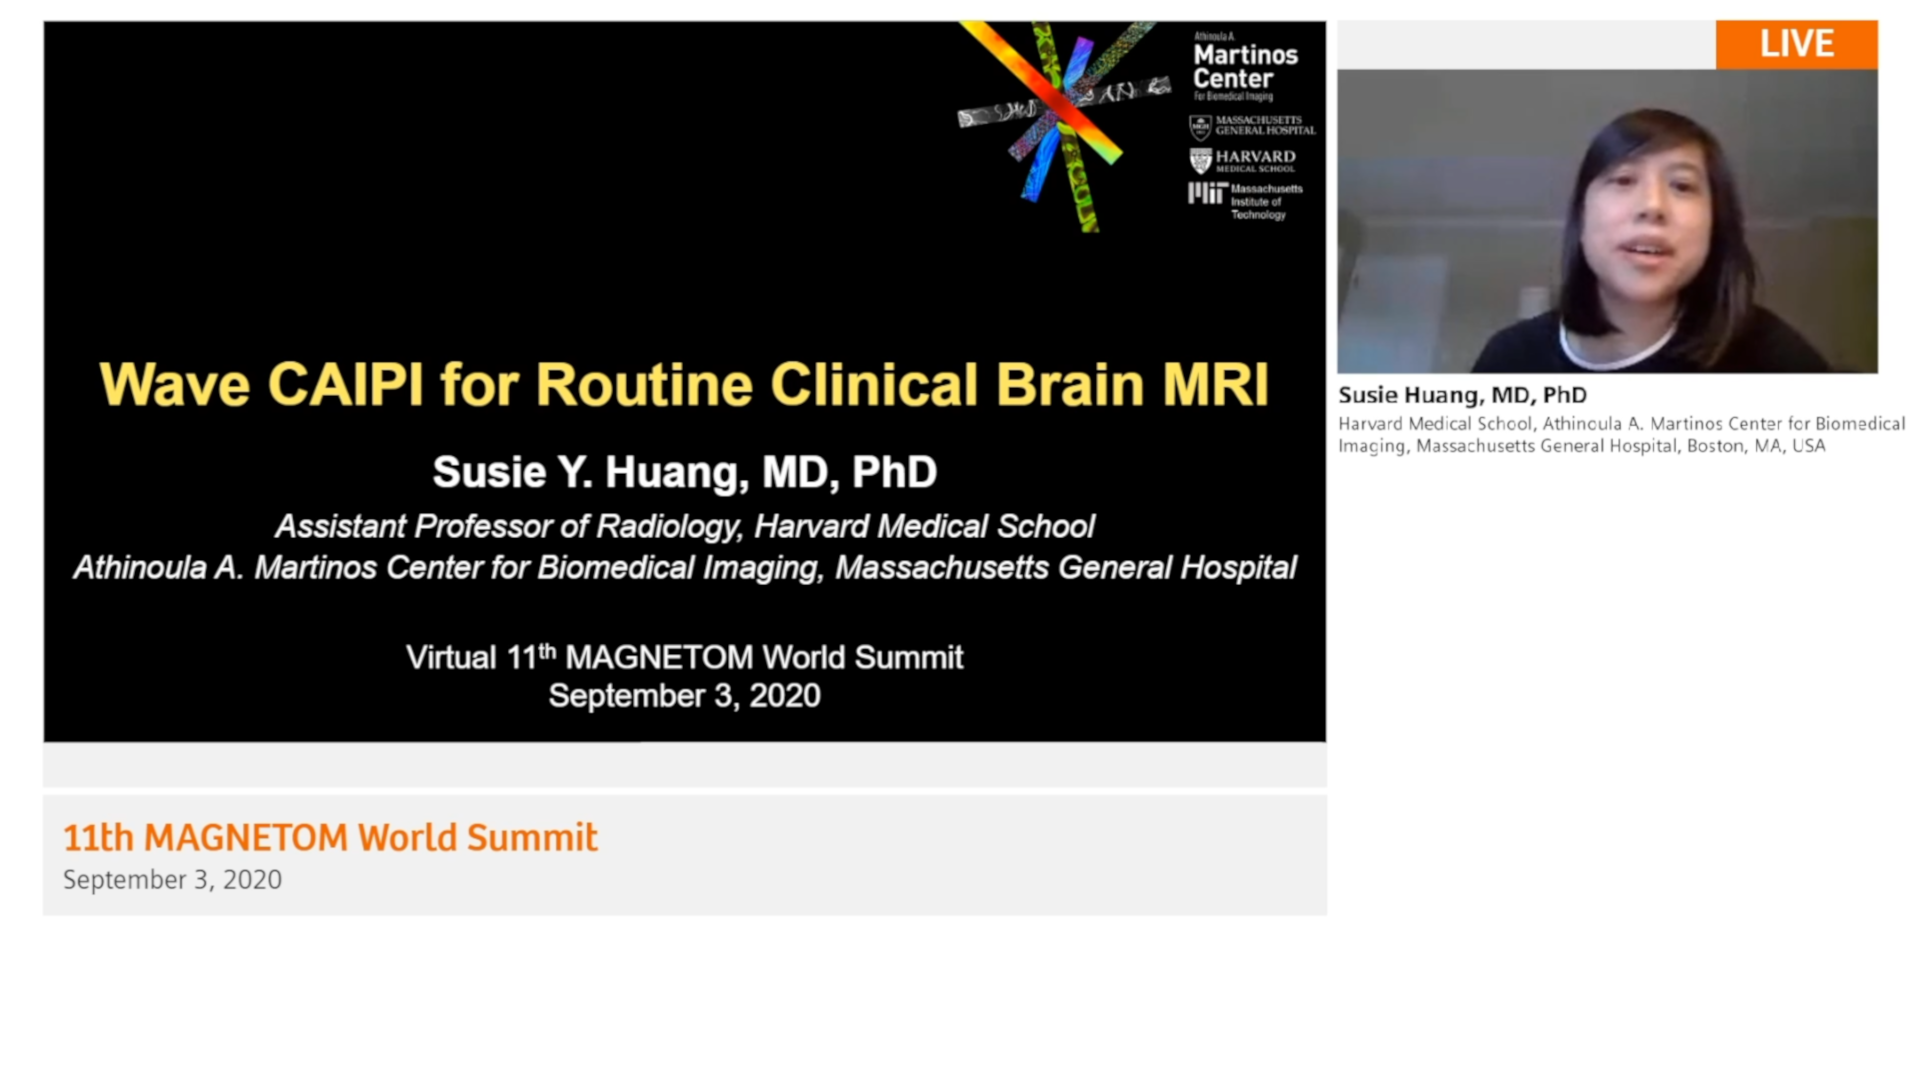 Preview Clinical Talk Susie Huang